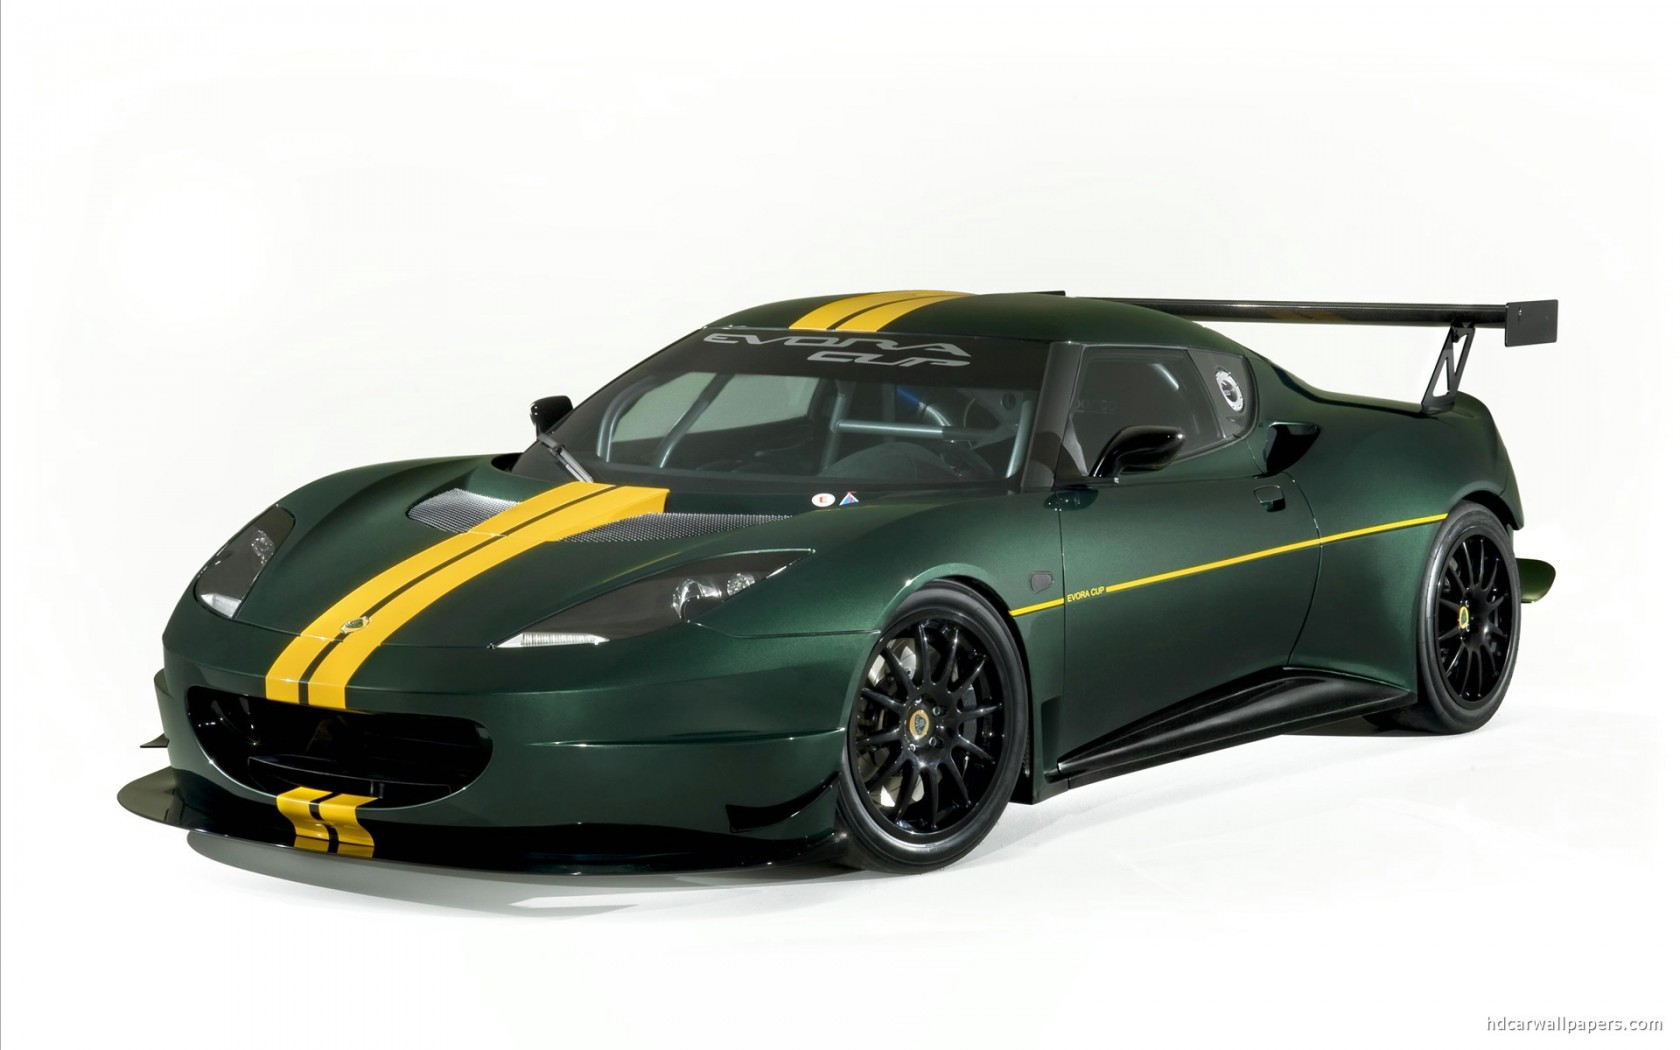 top speedy autos 2010 lotus evora cup race car. Black Bedroom Furniture Sets. Home Design Ideas